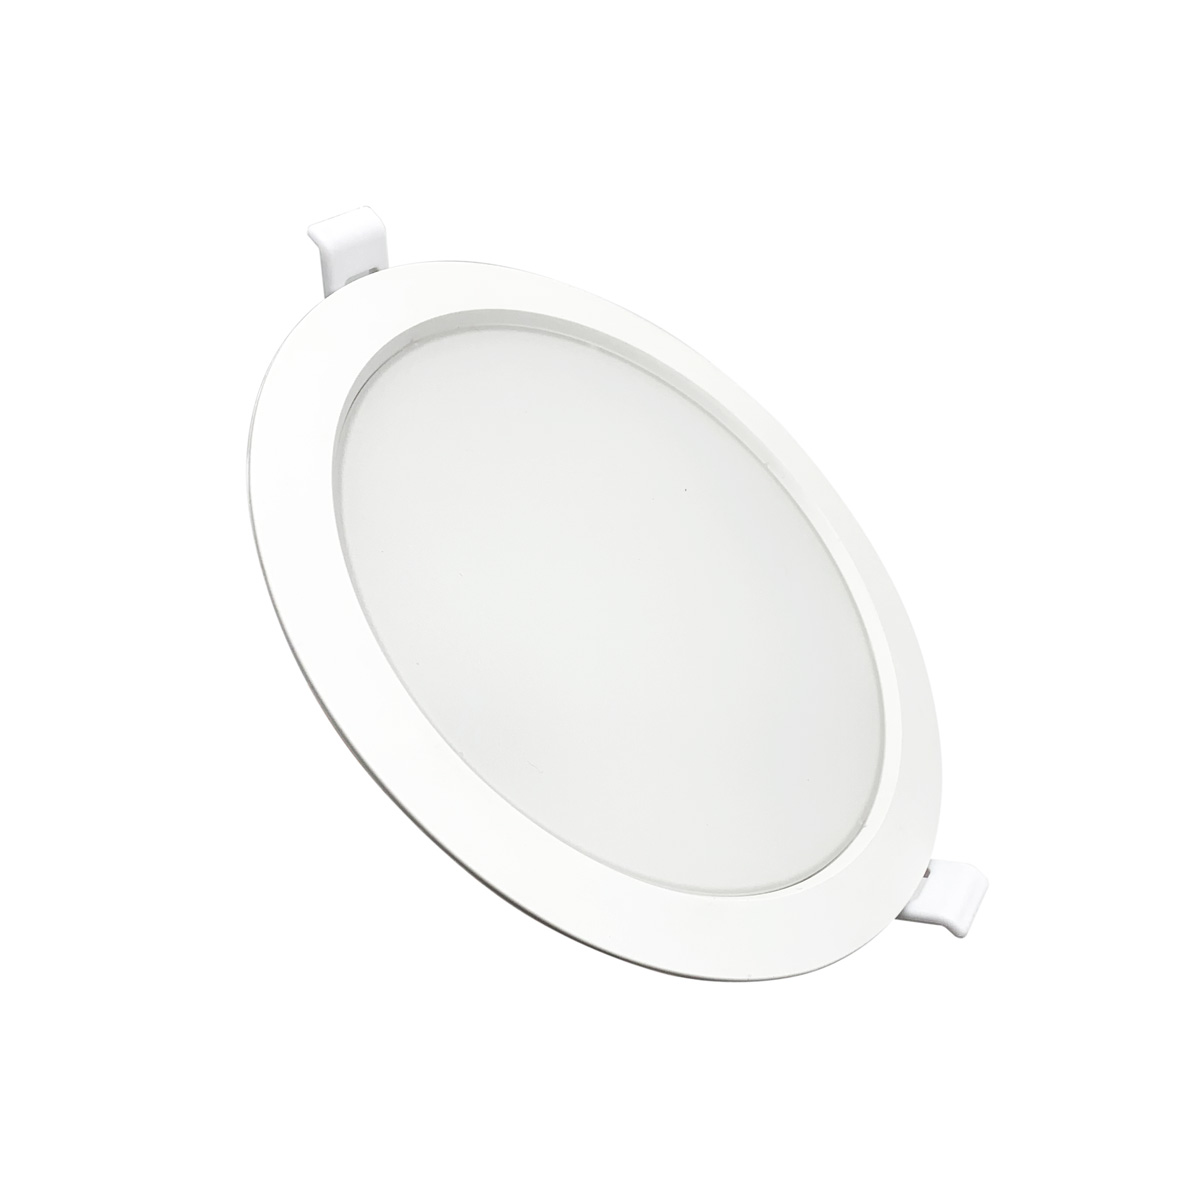 Projecteur LED 220v downlight à led 24W rond Blanc diamètre de la Jante 225mm DL6g